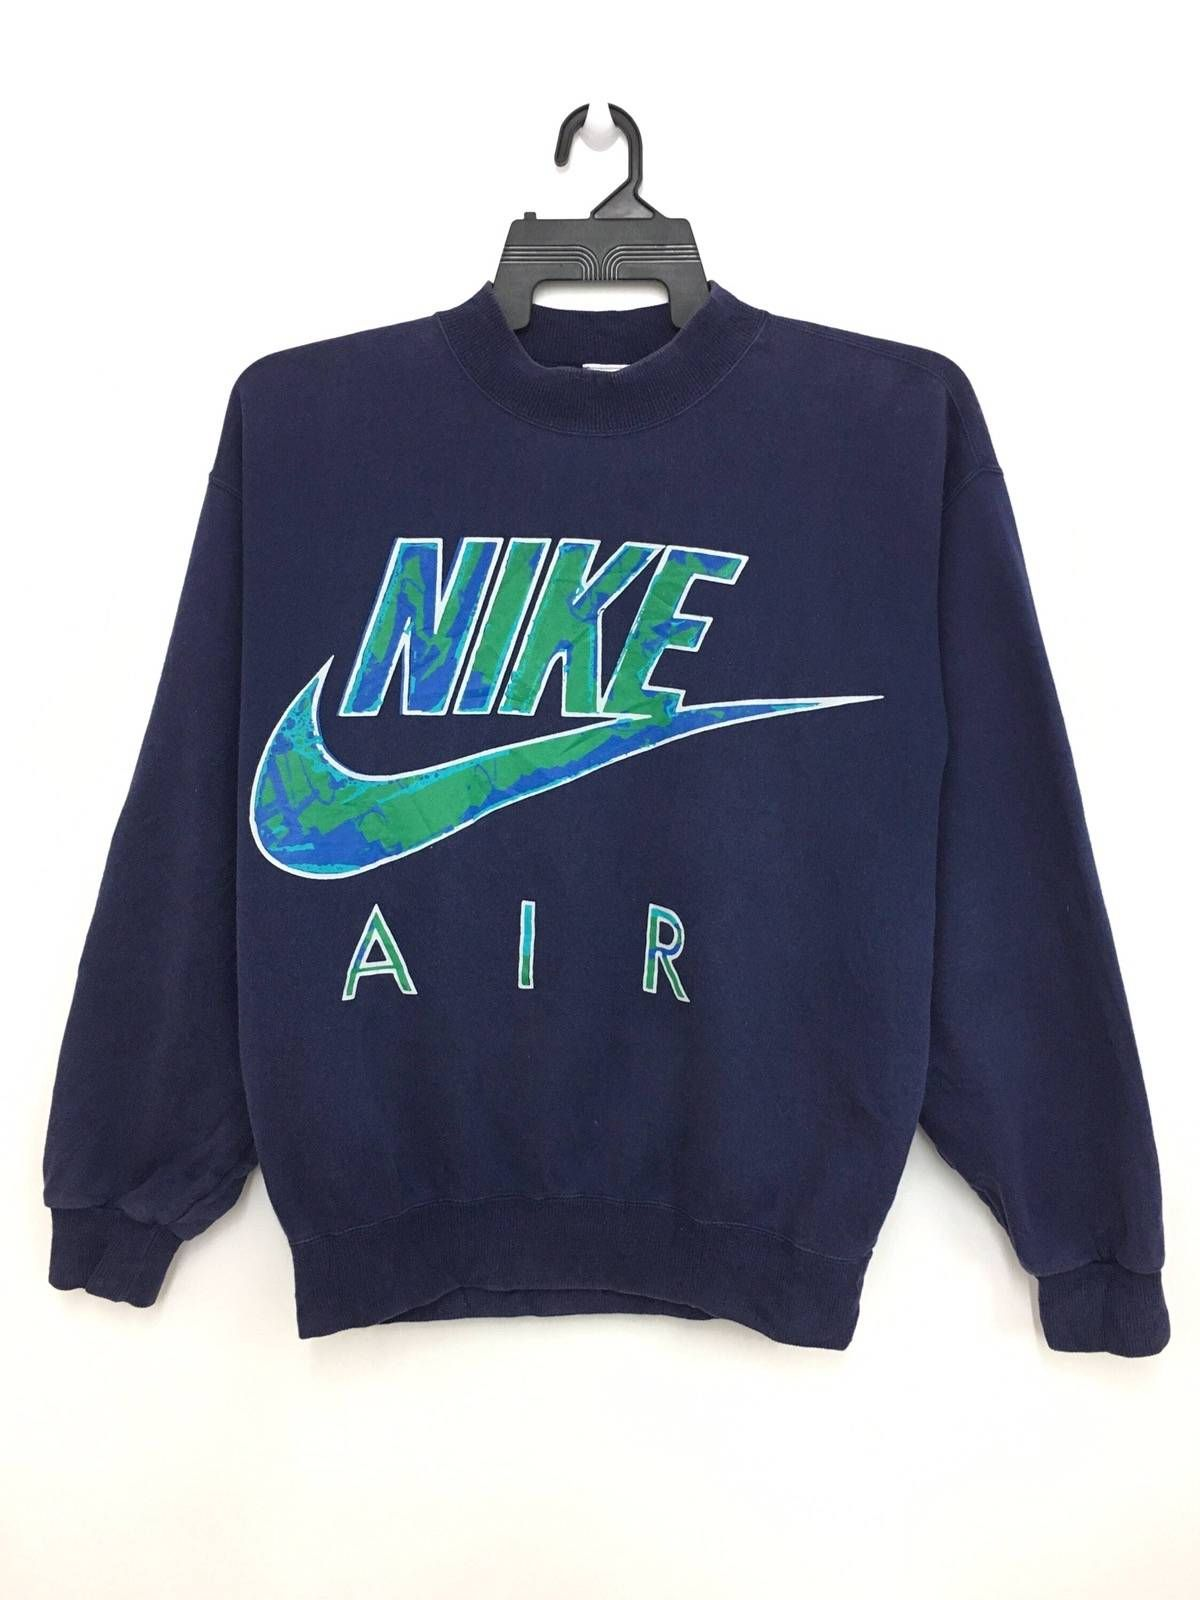 Nike Vintage 90 s NIKE AIR Sweatshirt Jumper Big Logo Spellout Grey Tag  Nice Design Large Size On Tag Size m - Sweatshirts   Hoodies for Sale -  Grailed e17a08275514b